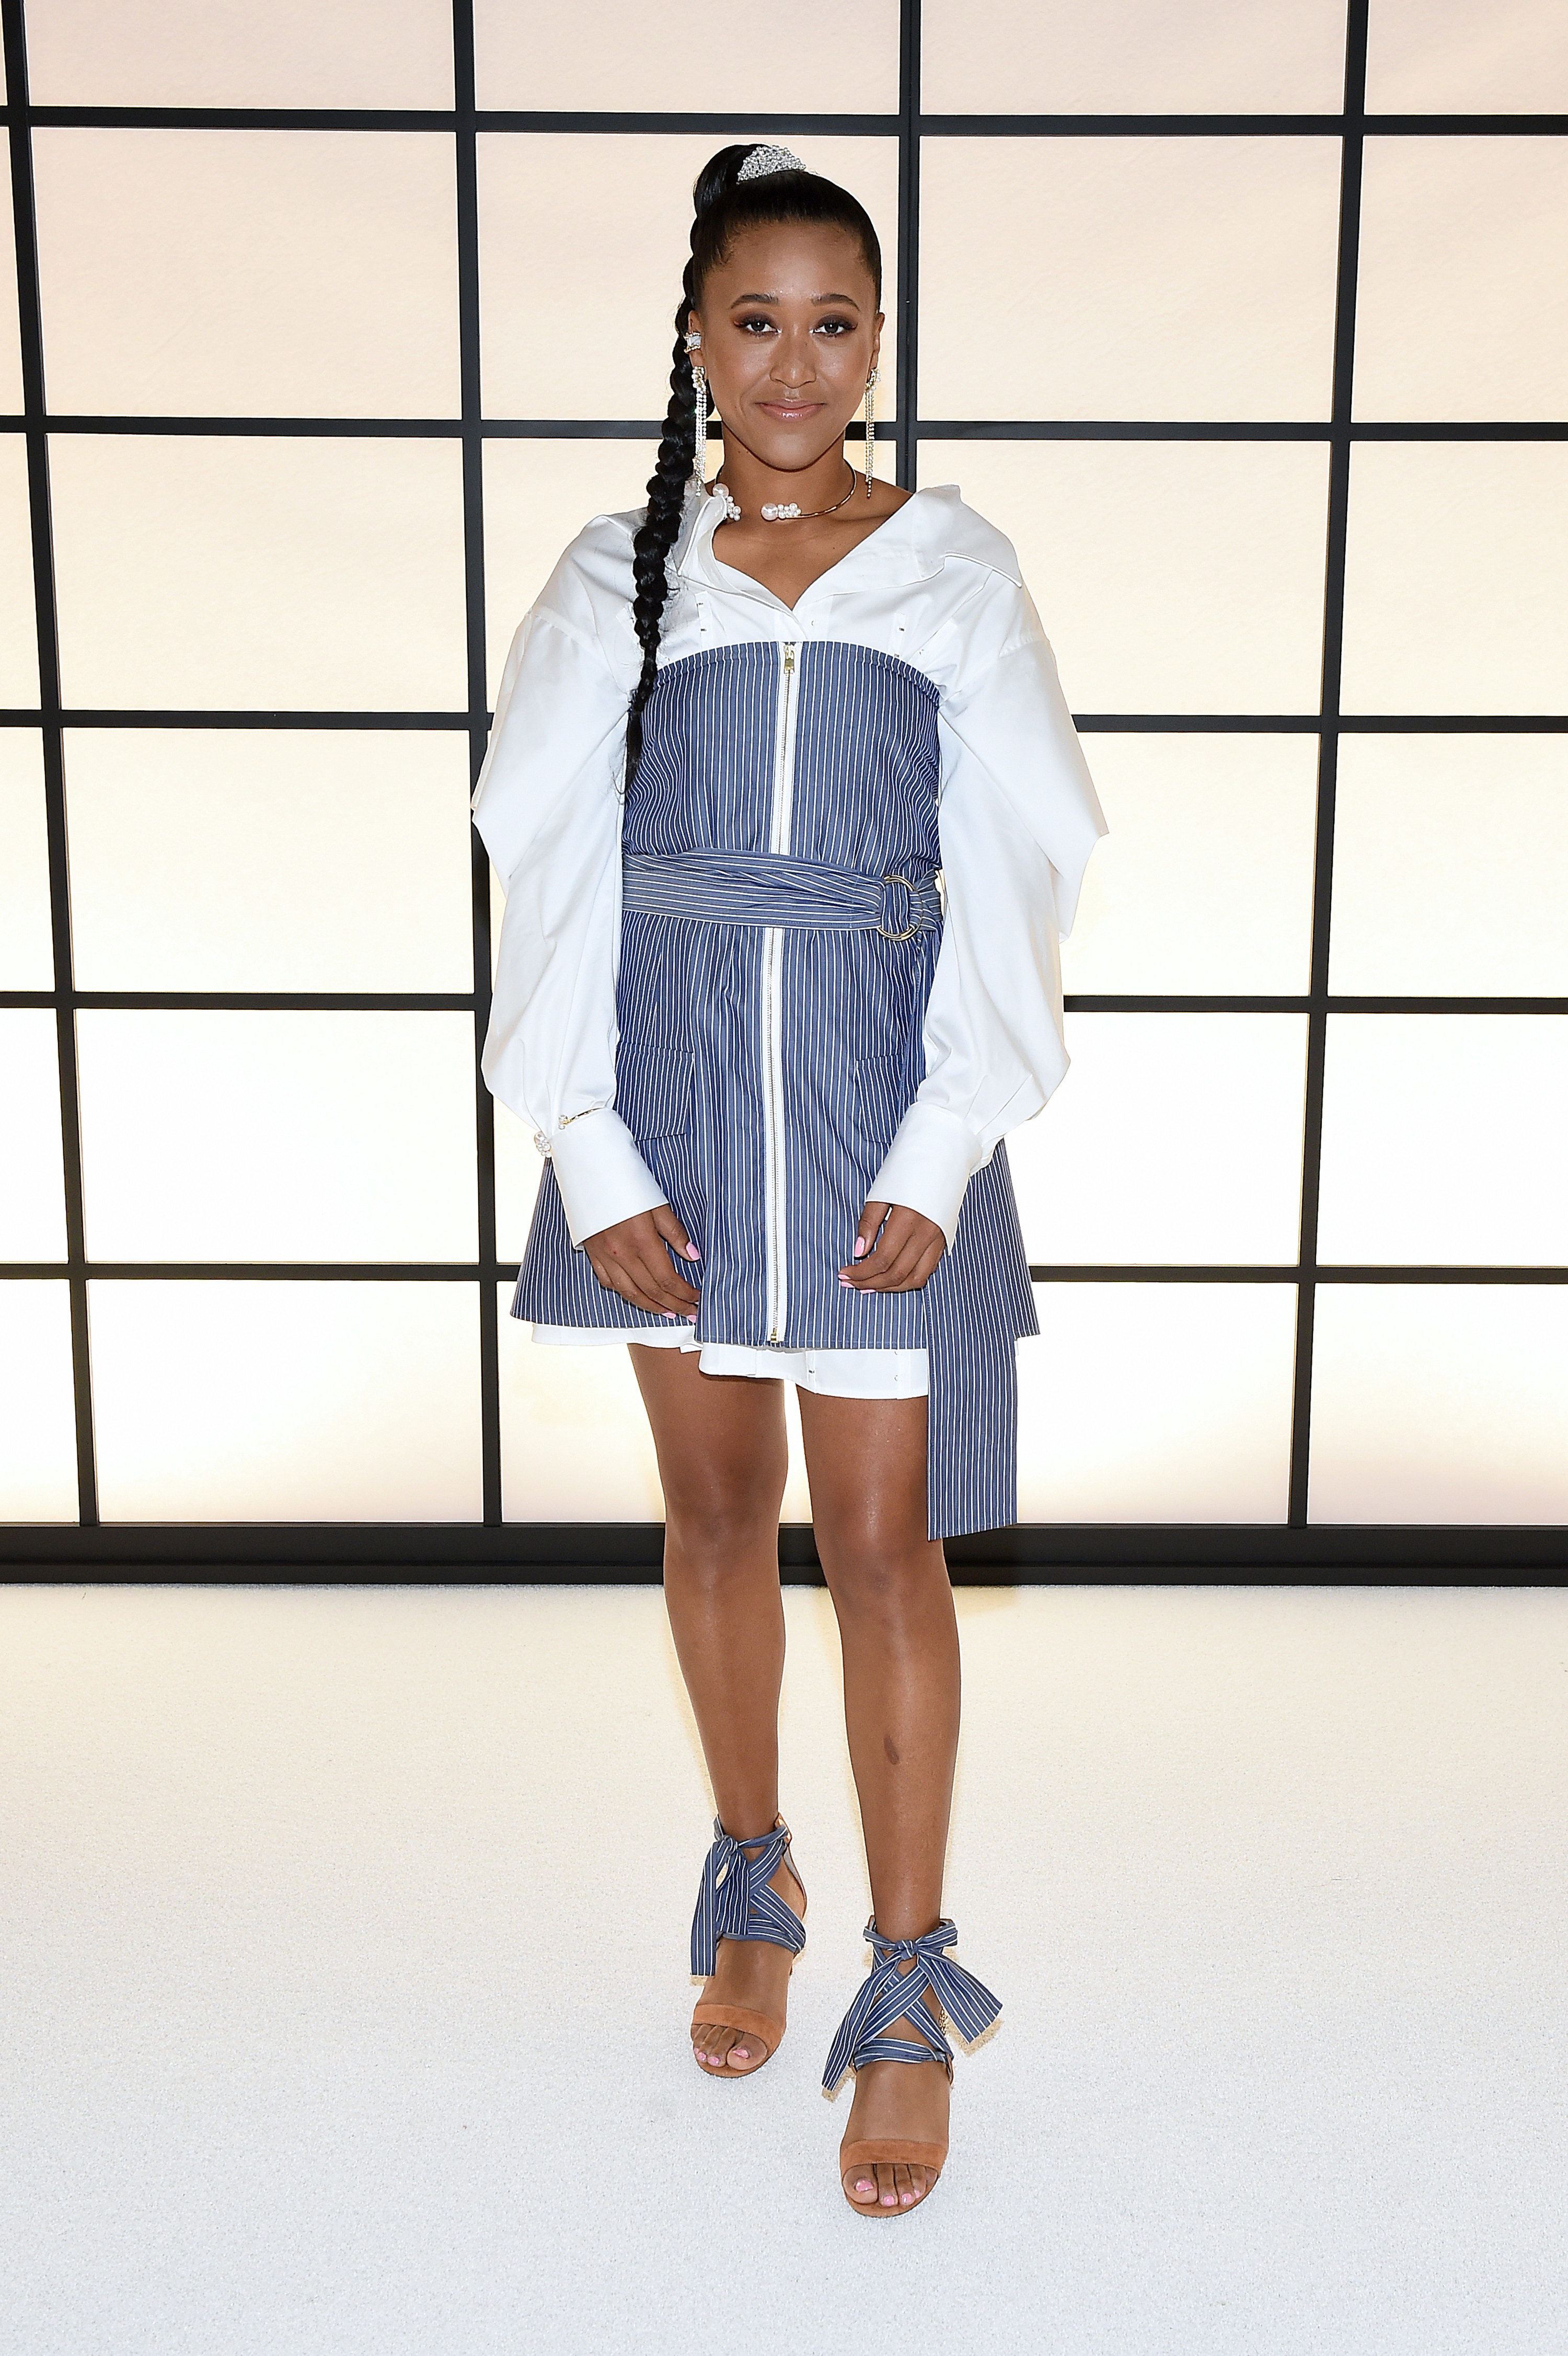 Naomi wears a blue striped dress on top of a white button-up